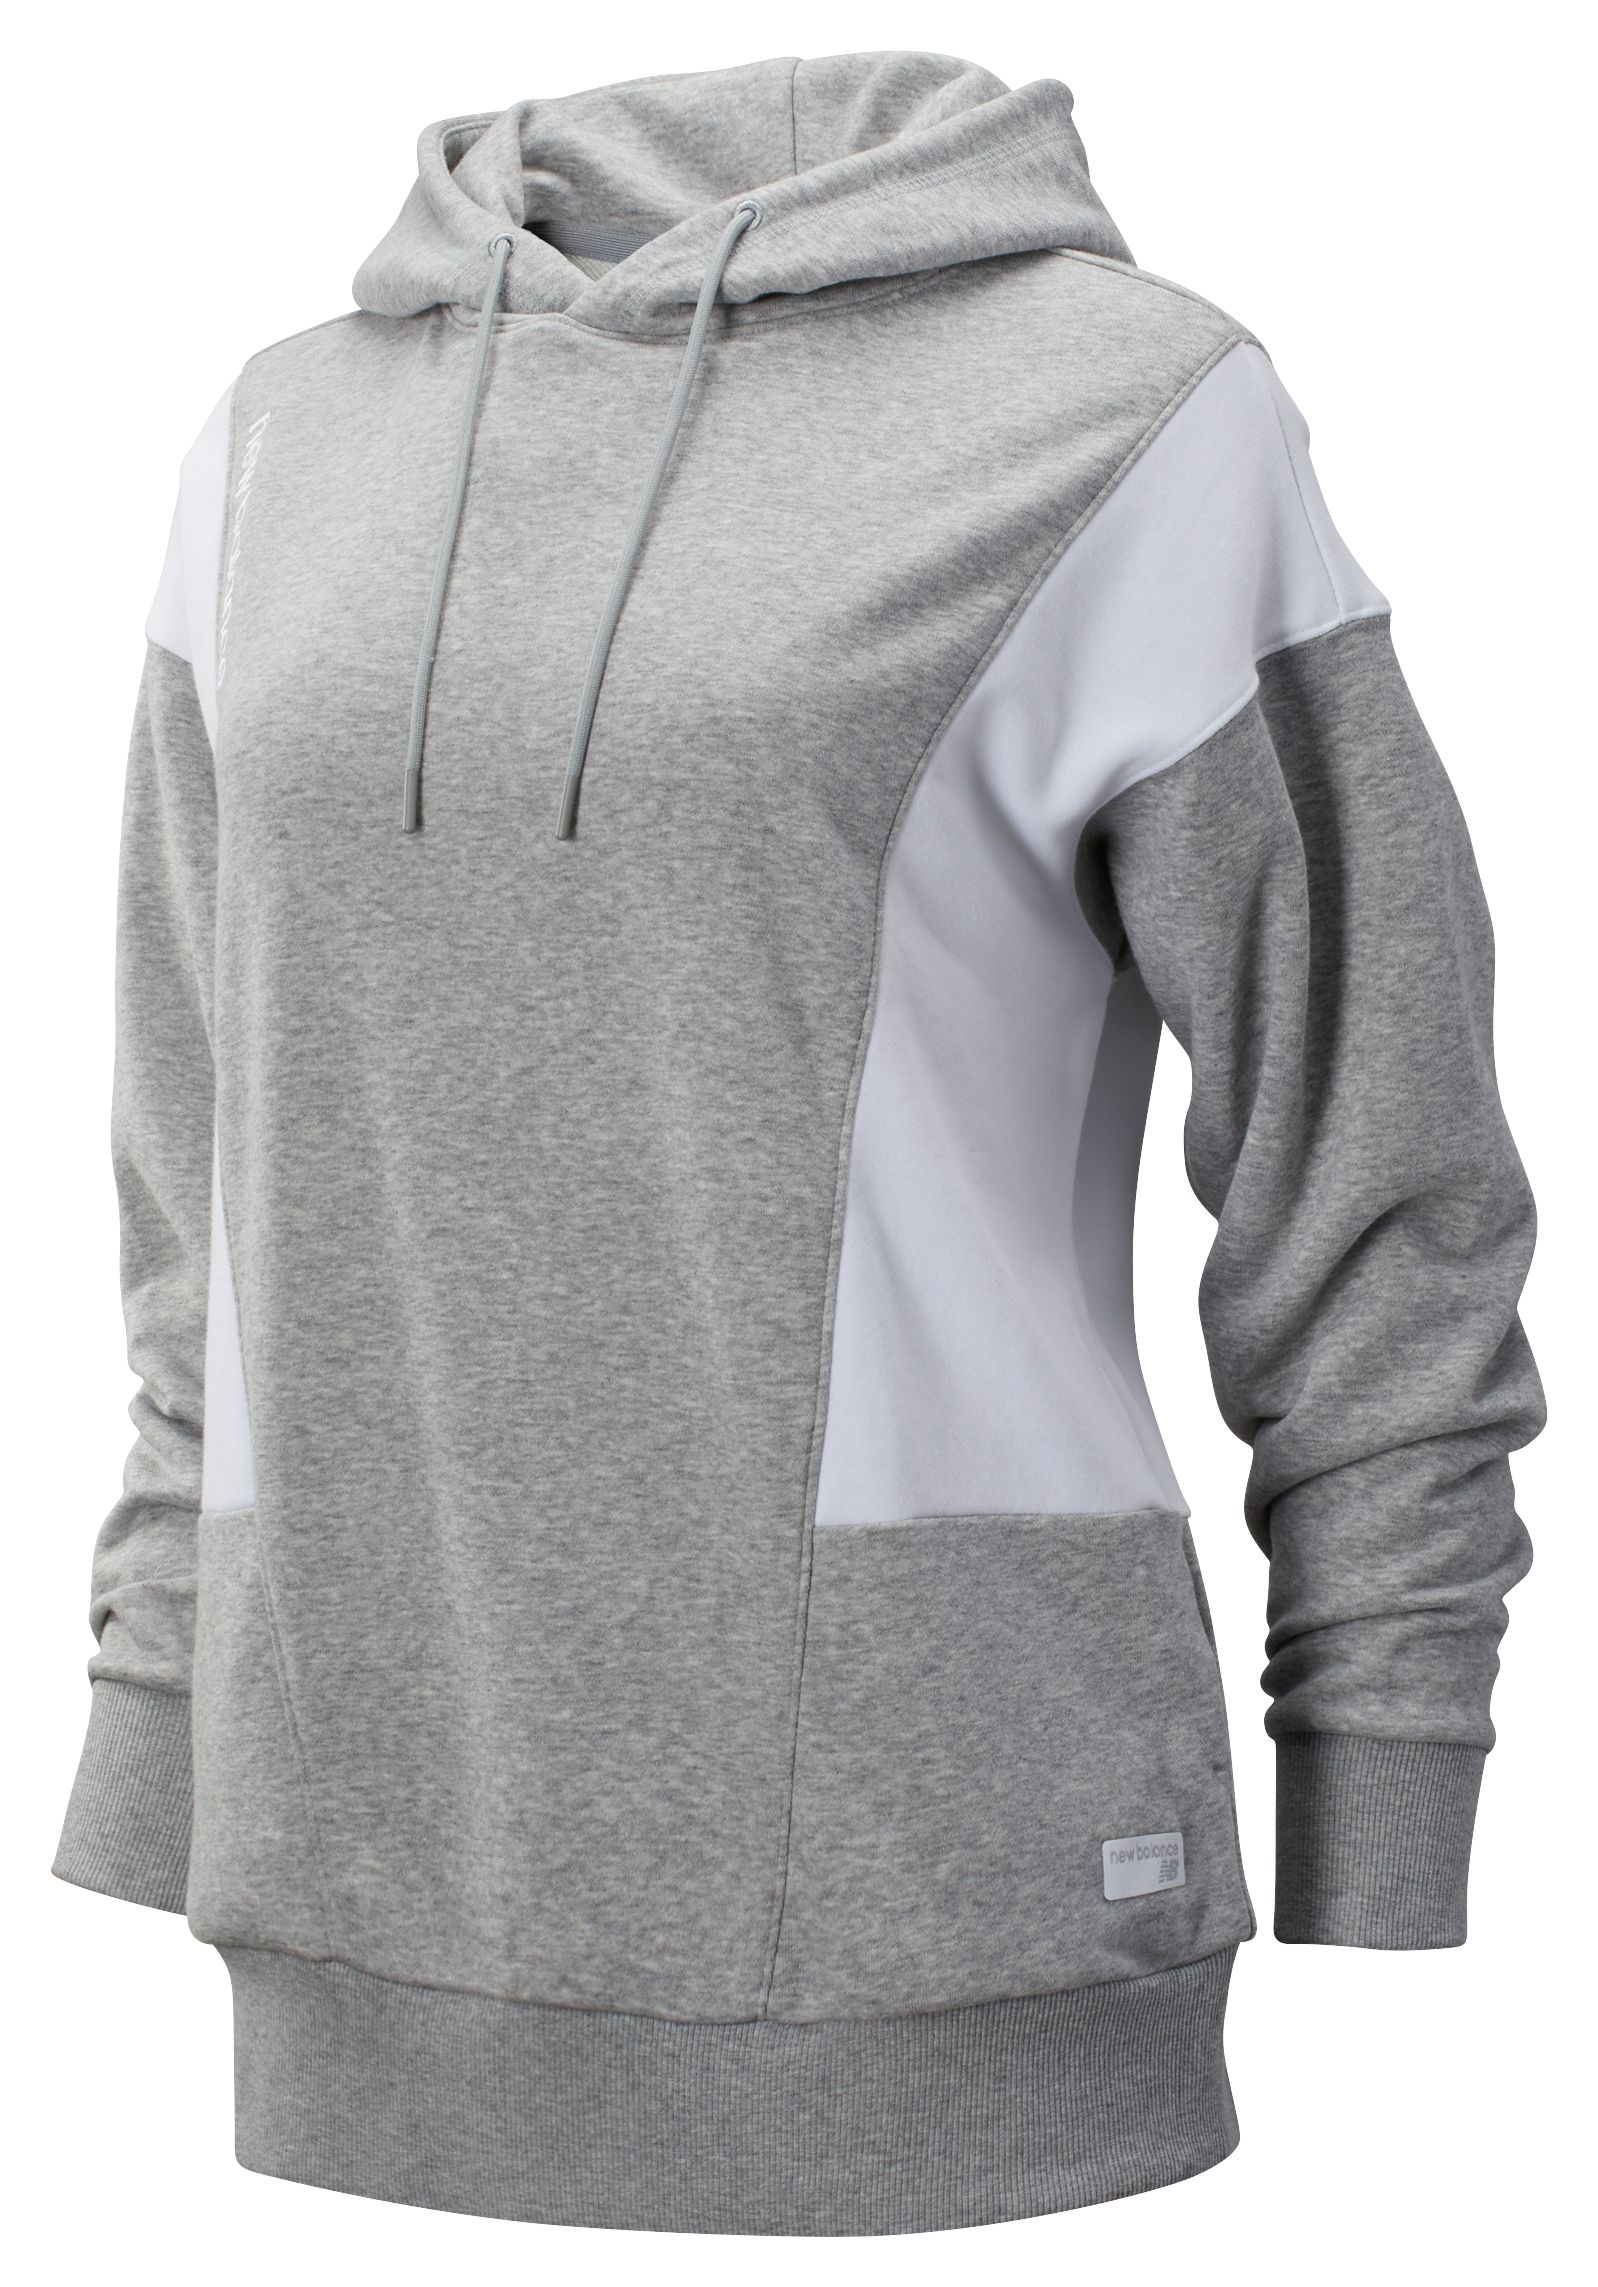 Women's NB Athletics Classic Hoodie